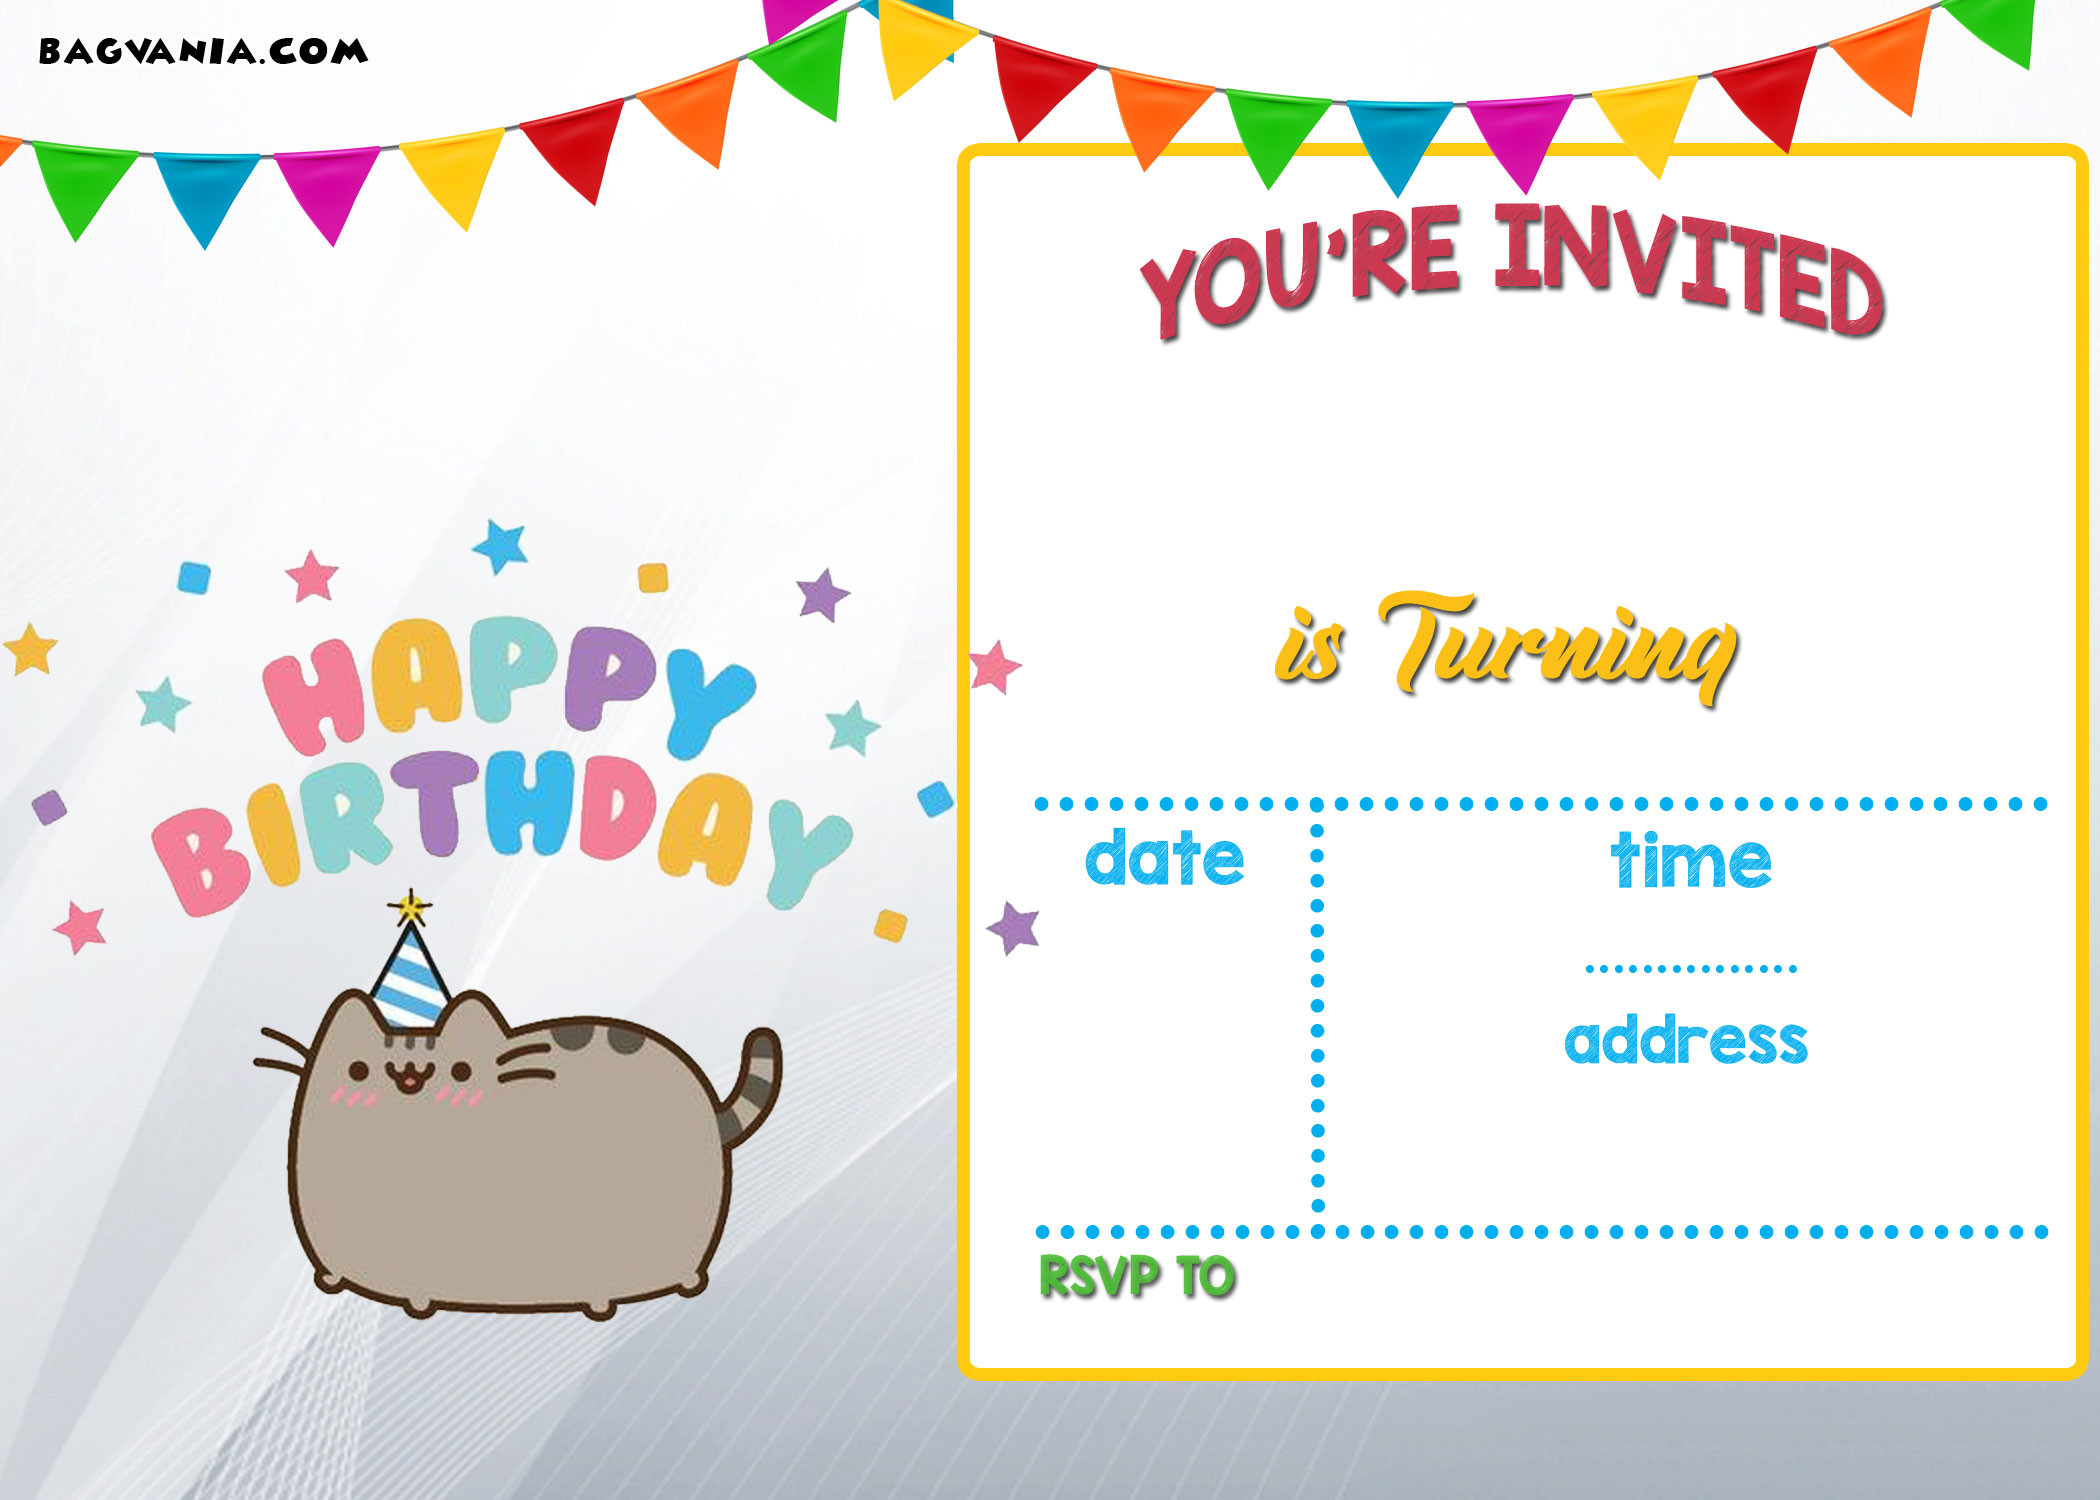 Best ideas about Printable Birthday Invitations . Save or Pin FREE Printable Pusheen Birthday Invitation Template Now.